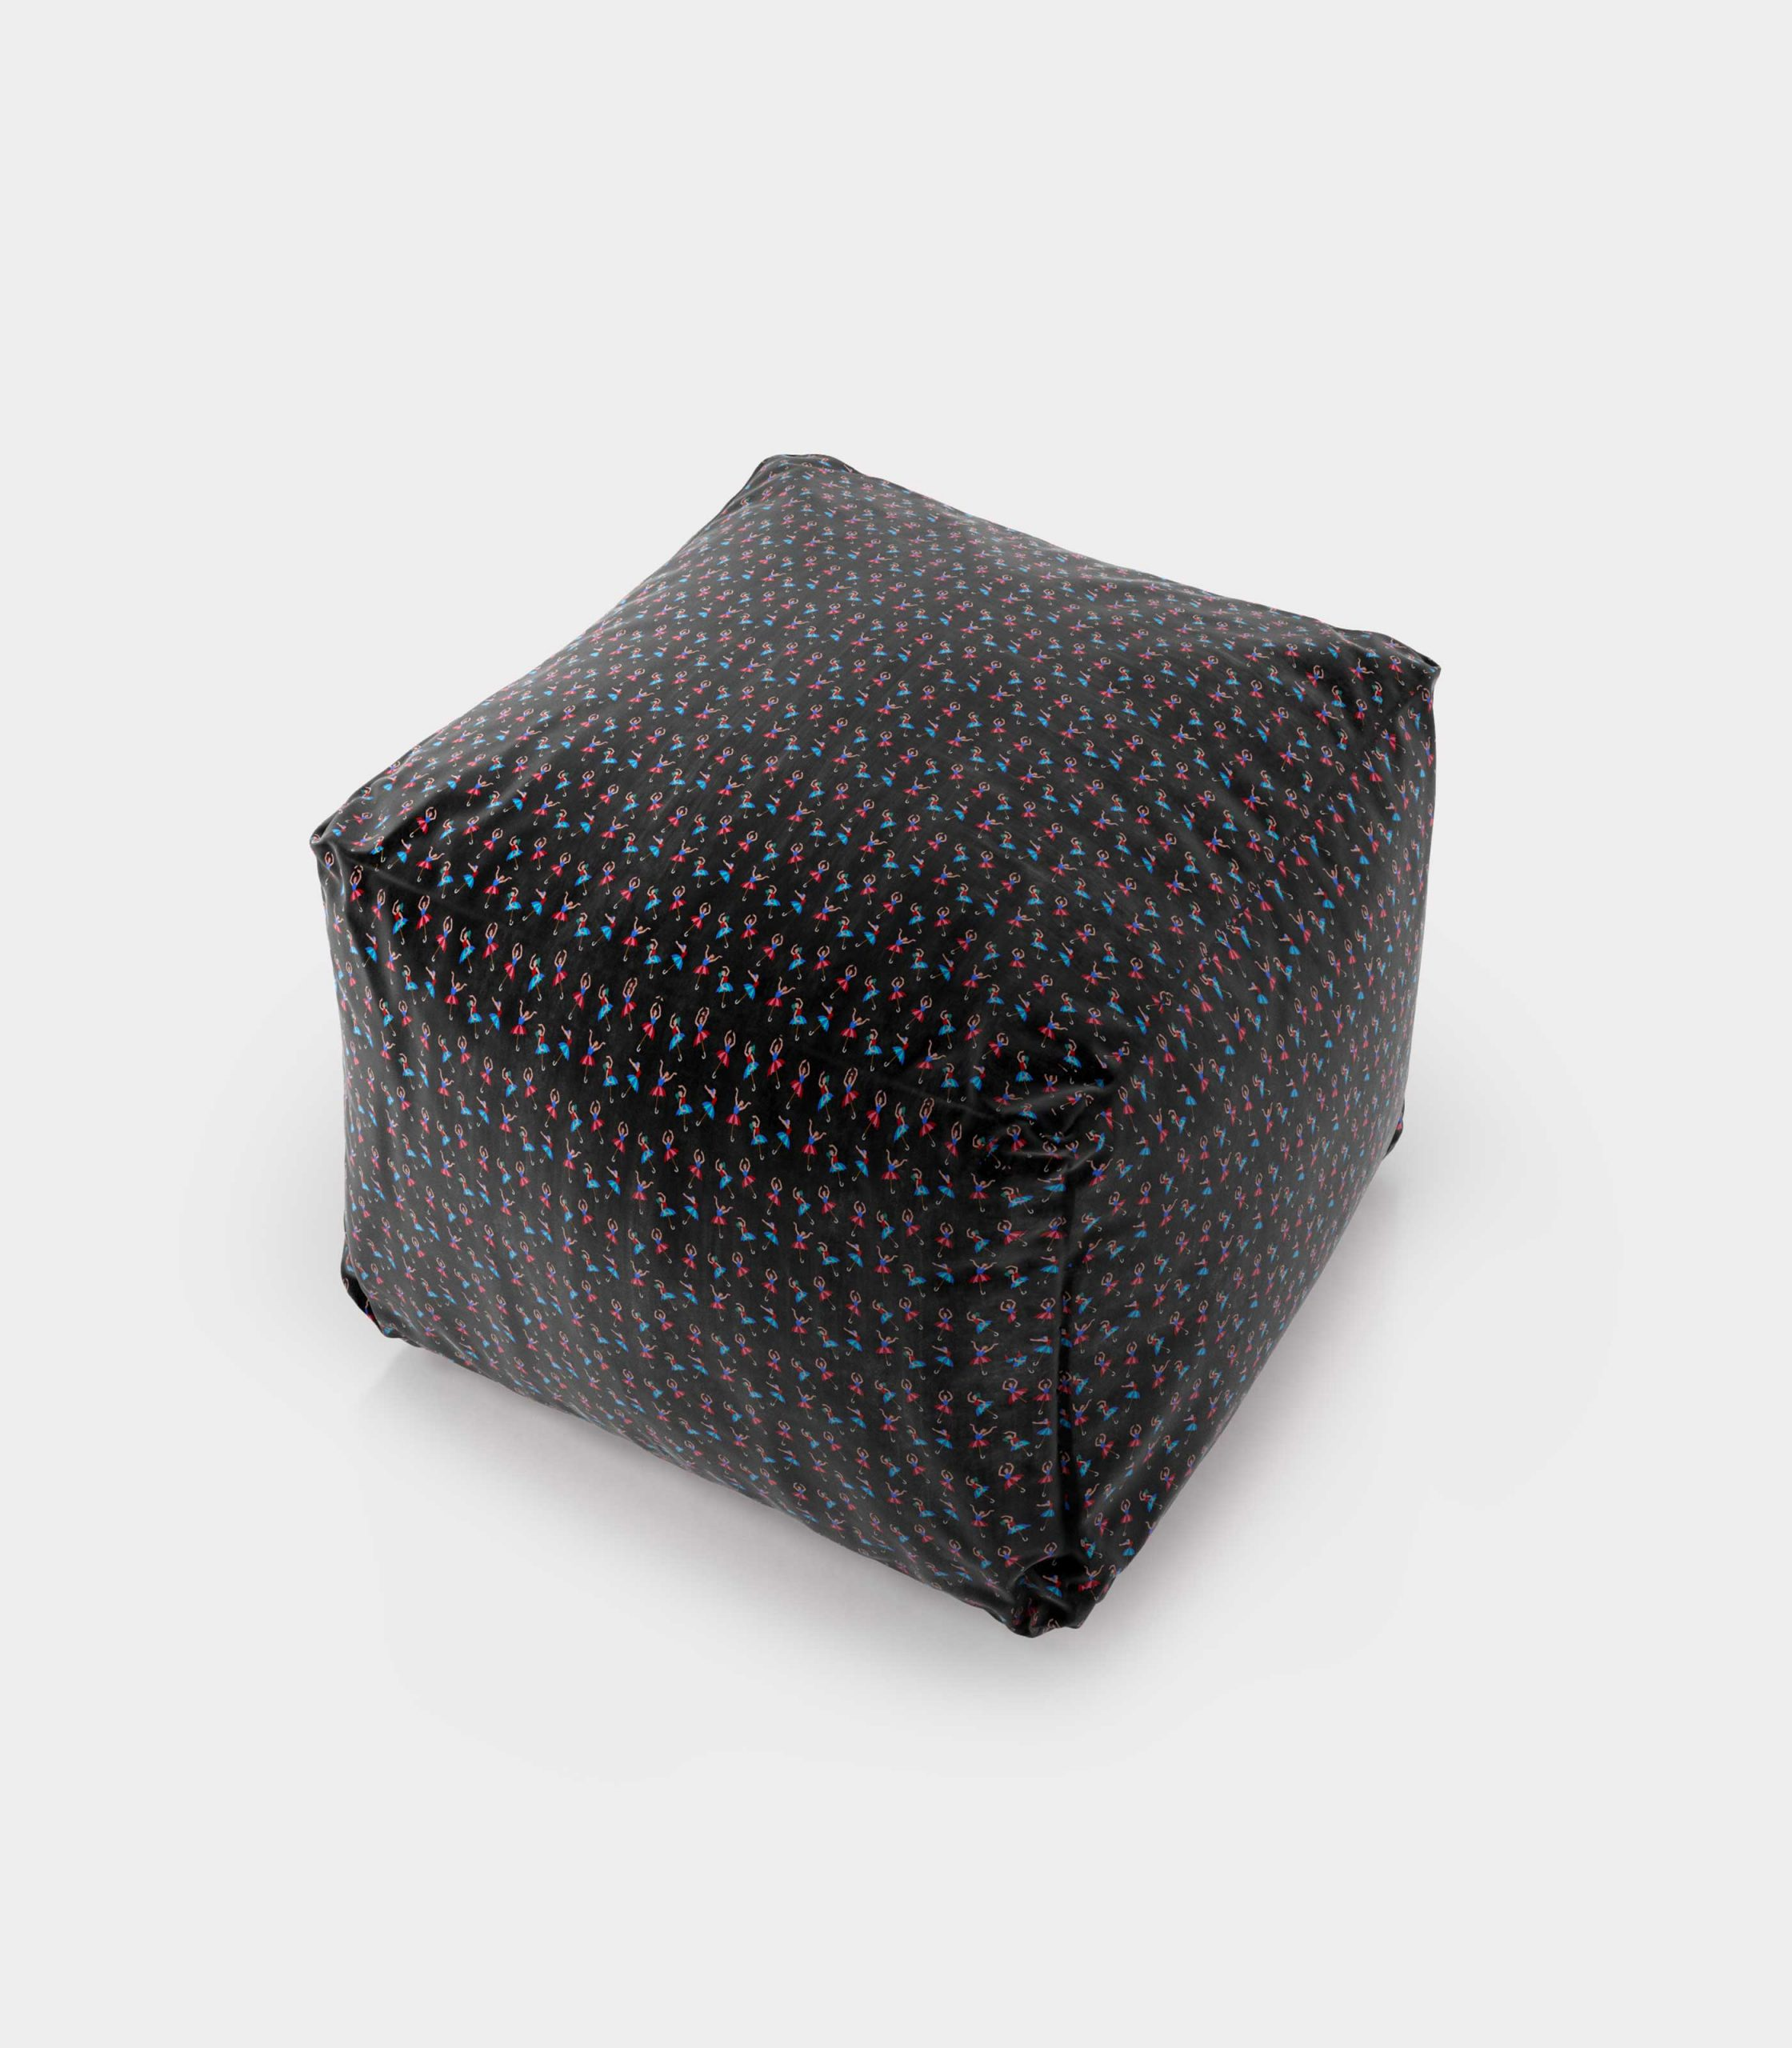 """Polystyrene Pouf with """"Dancers and Umbrellas"""" pattern loopo milan design F"""